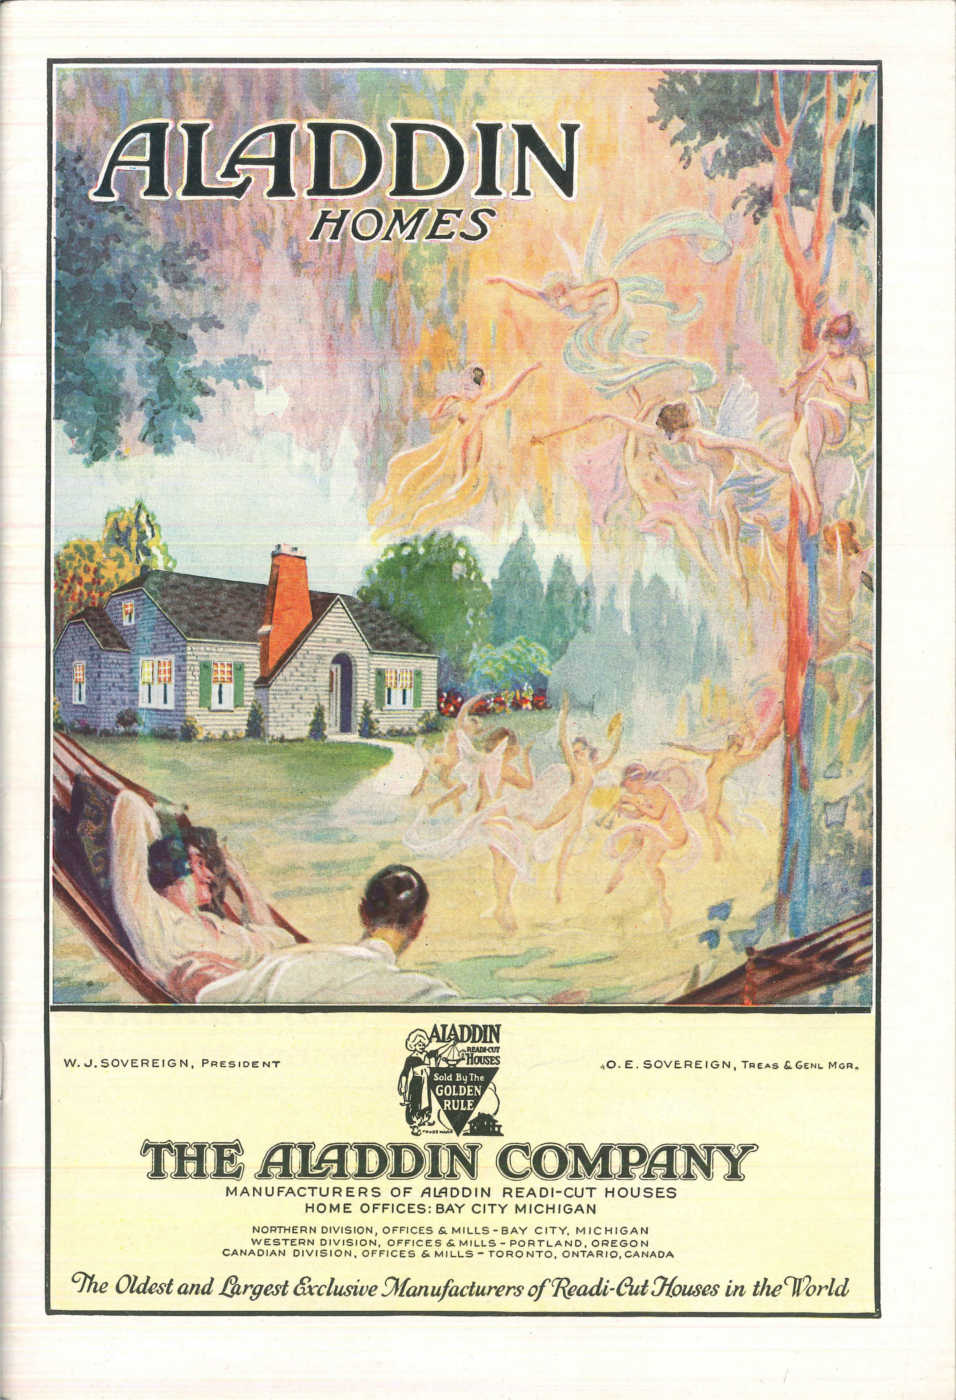 An Aladdin Company Catalog c. 1931. Image courtesy of the Clarke Historical Library at Central Michigan University.